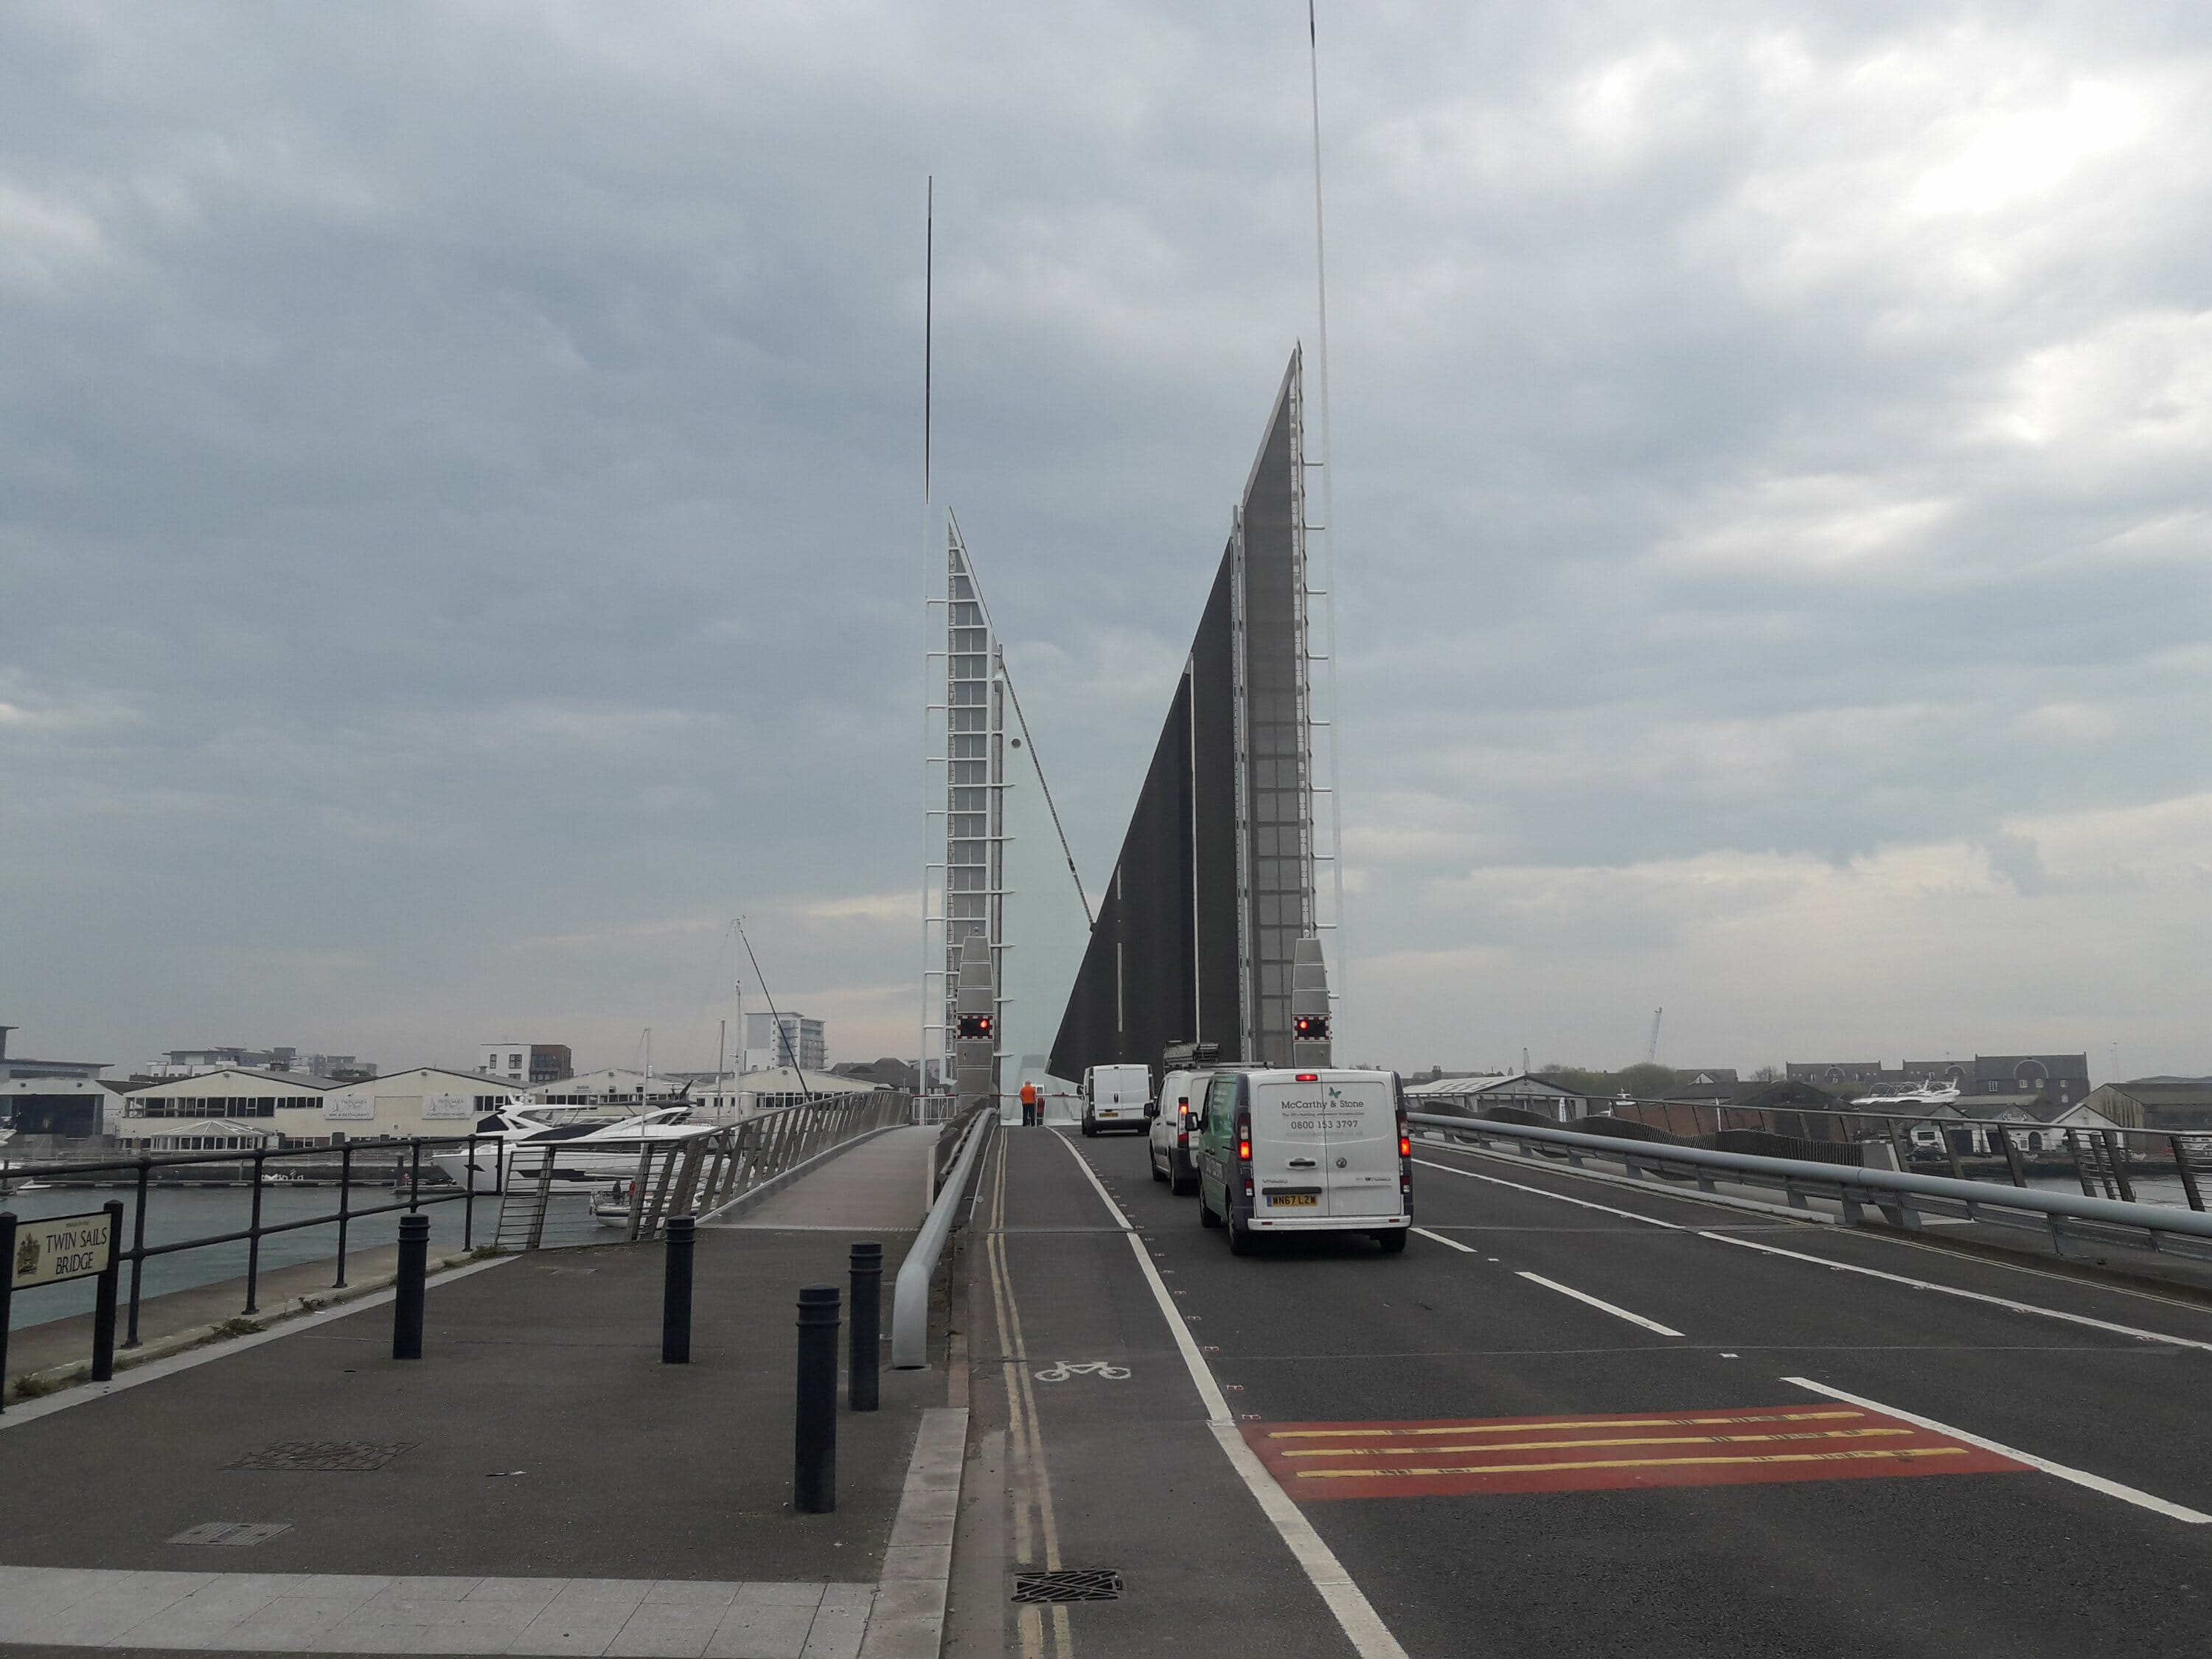 Two sails bridge